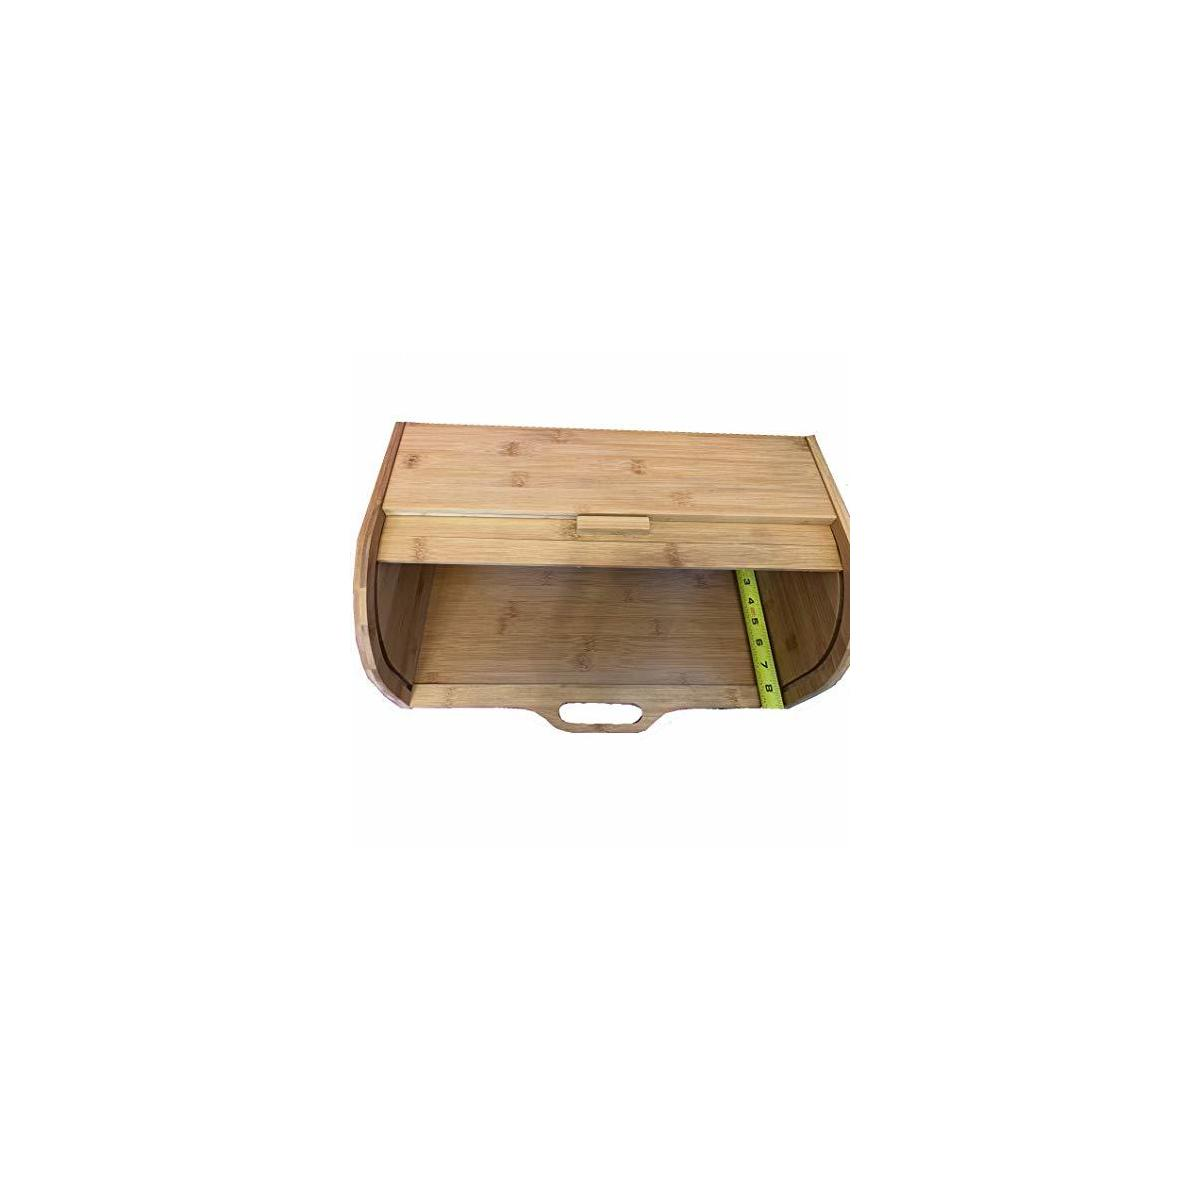 New Easy Grip Large Storage Bamboo Bread Box For Kitchen Counter and Universal Home Design 2020 Latest Upgrades